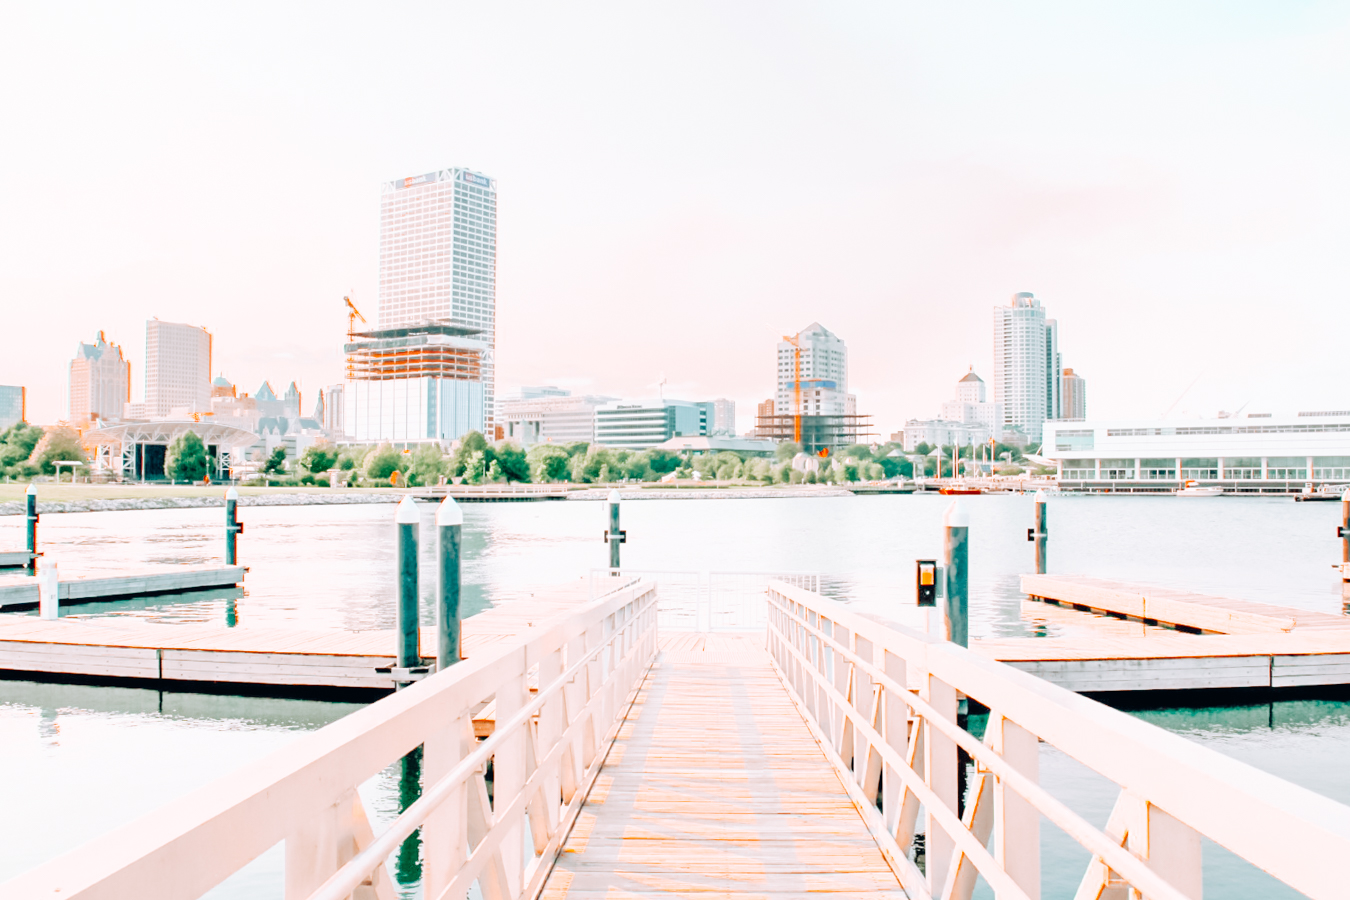 Water and buildings in Milwaukee